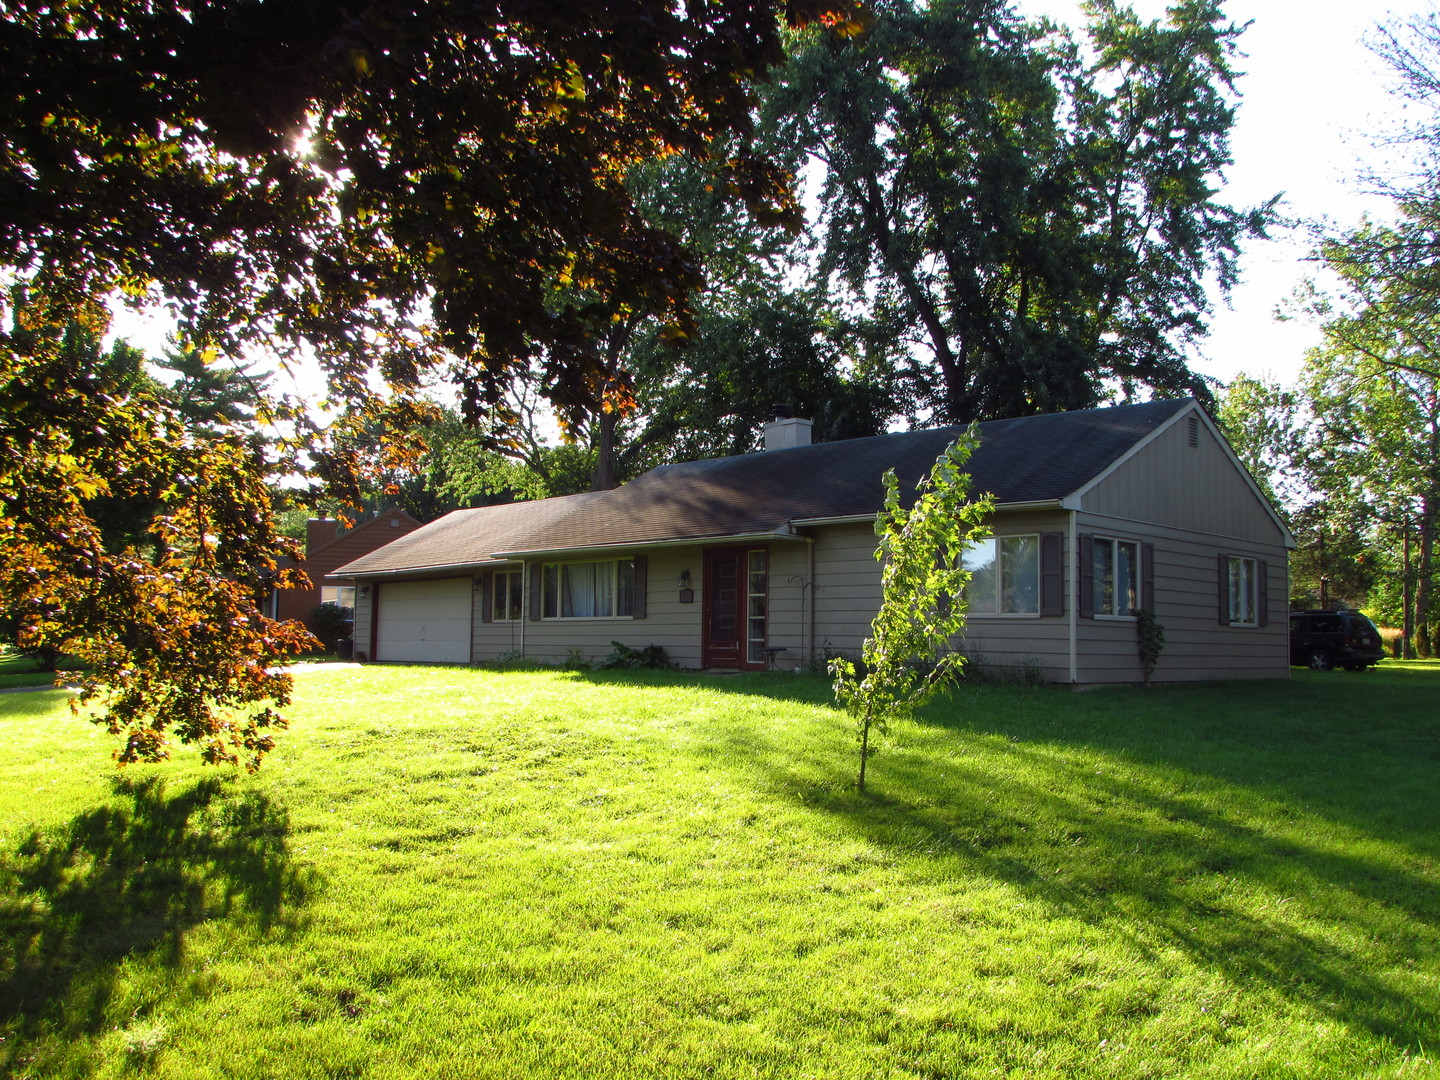 5543 South Franklin, LA GRANGE HIGHLANDS, Illinois, 60525